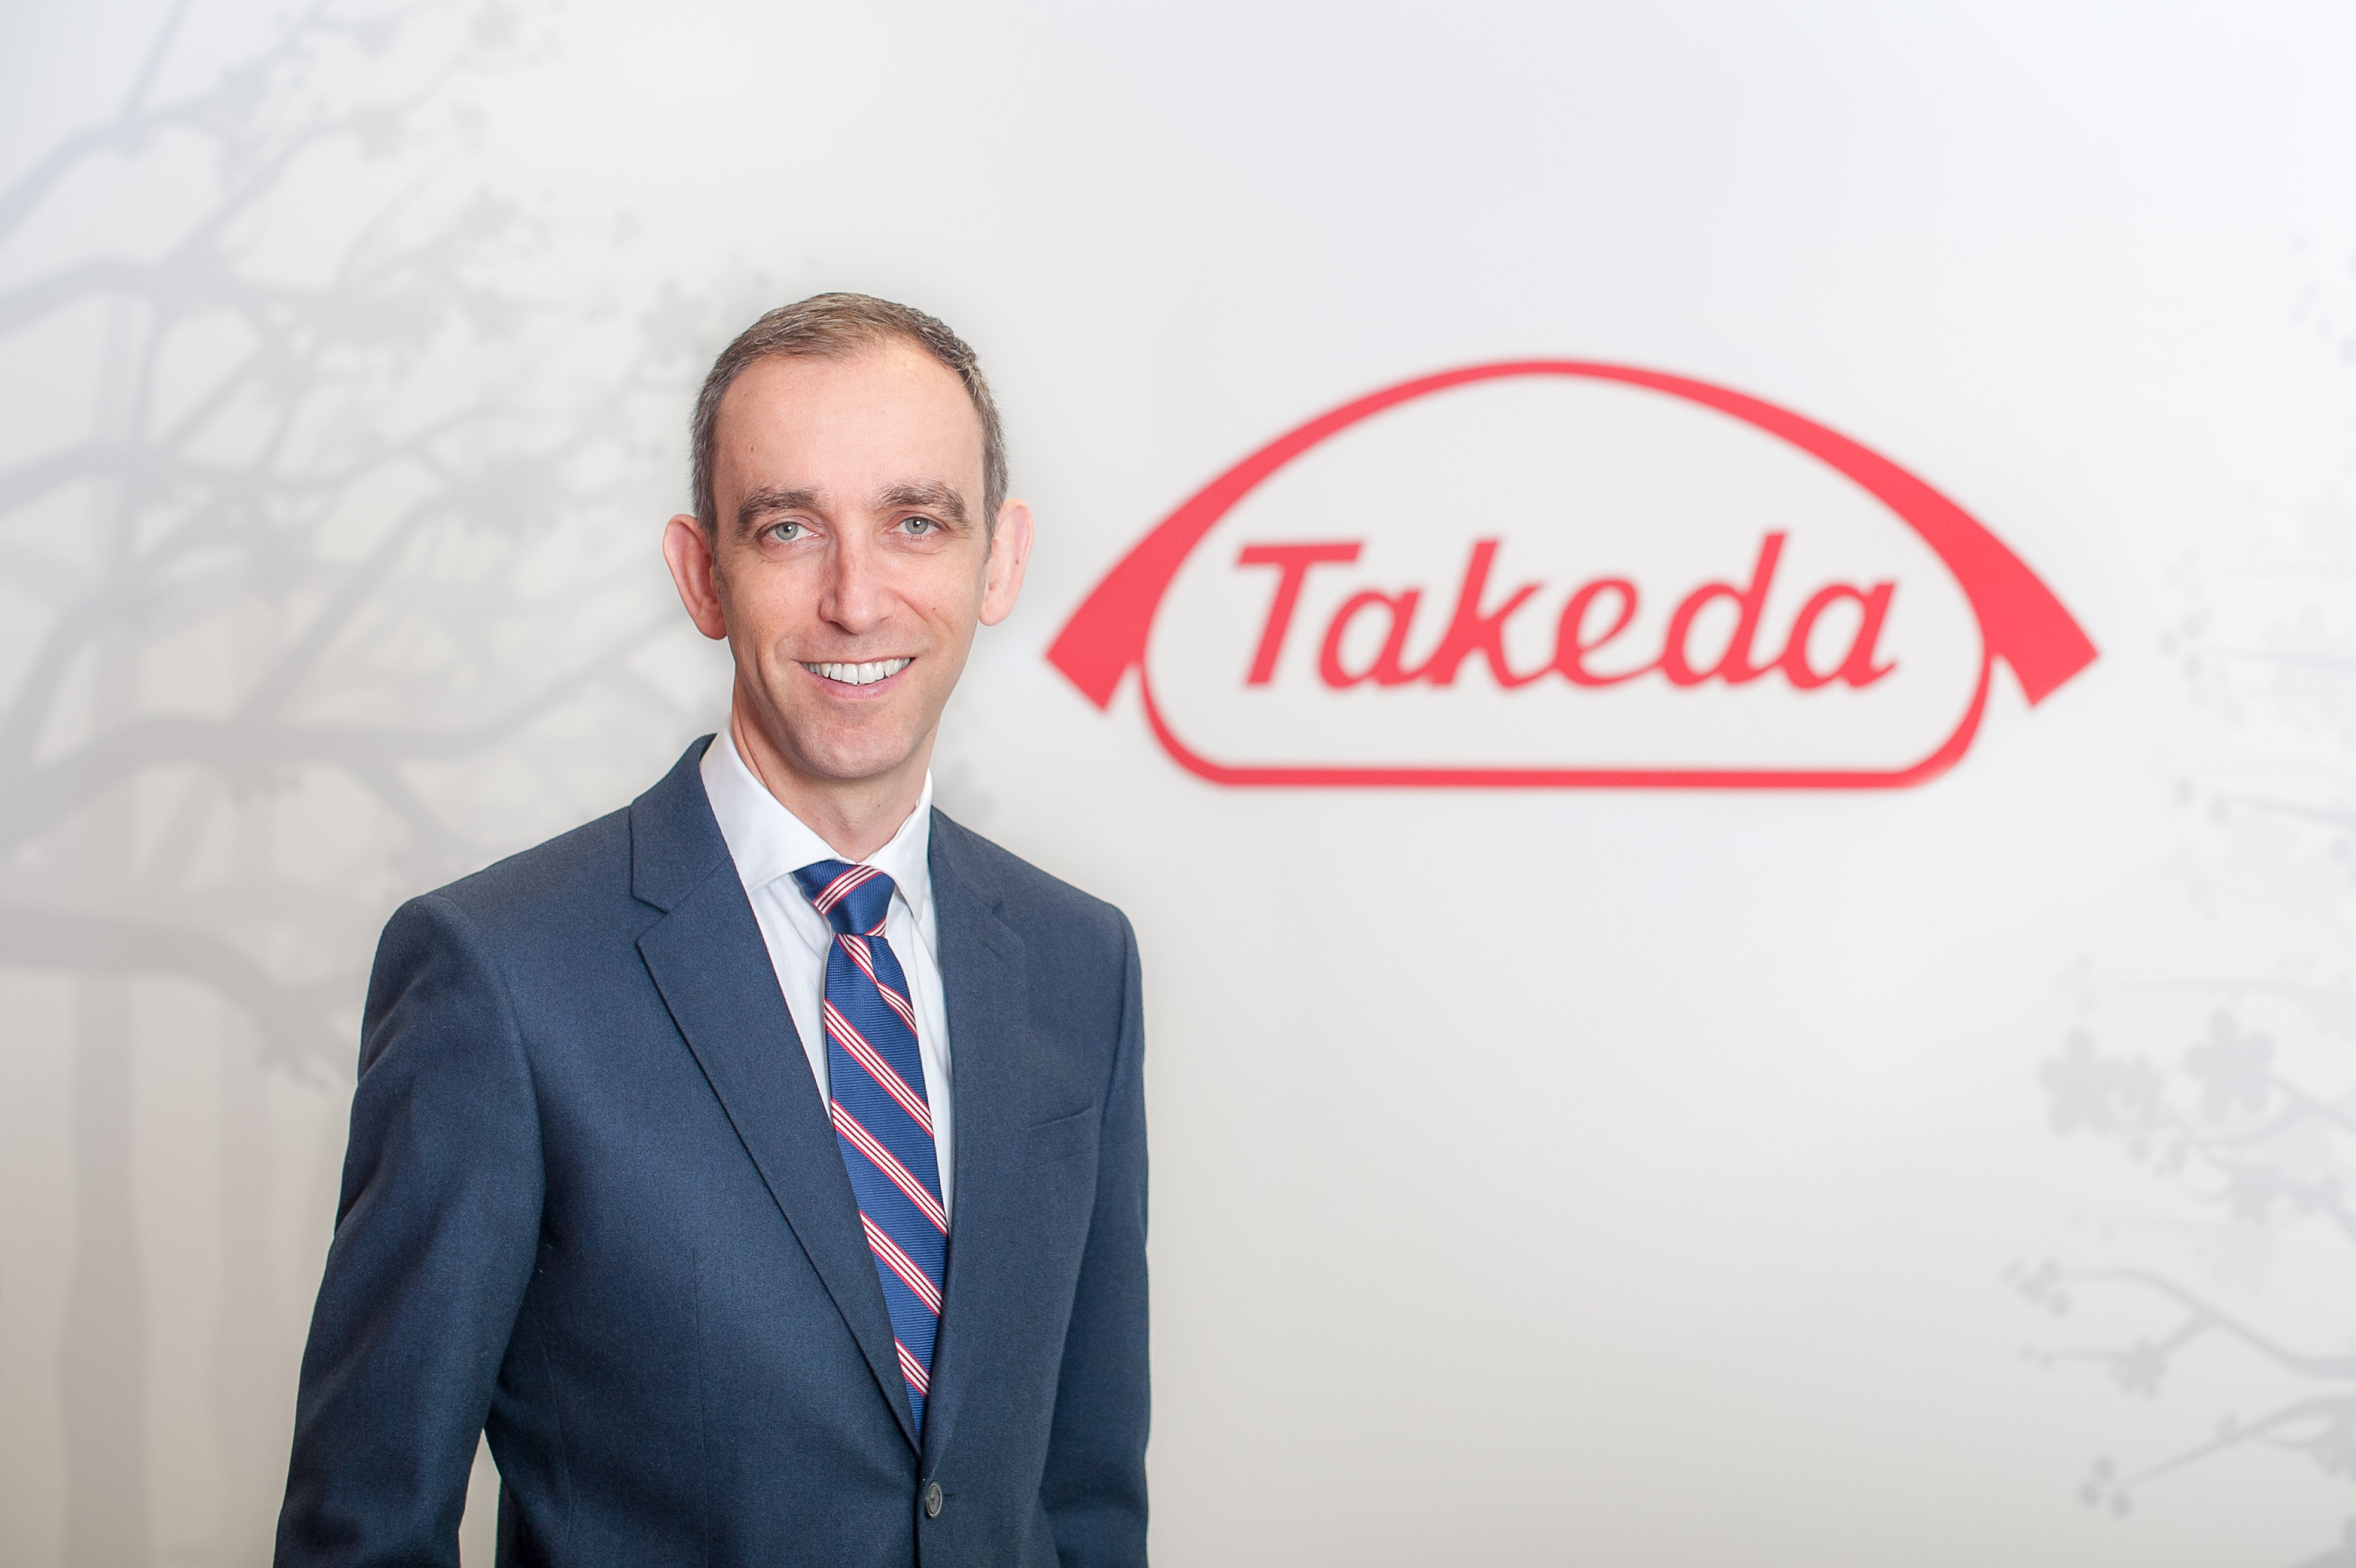 Shire acquisition - Statement on Takeda UK and Ireland Leadership